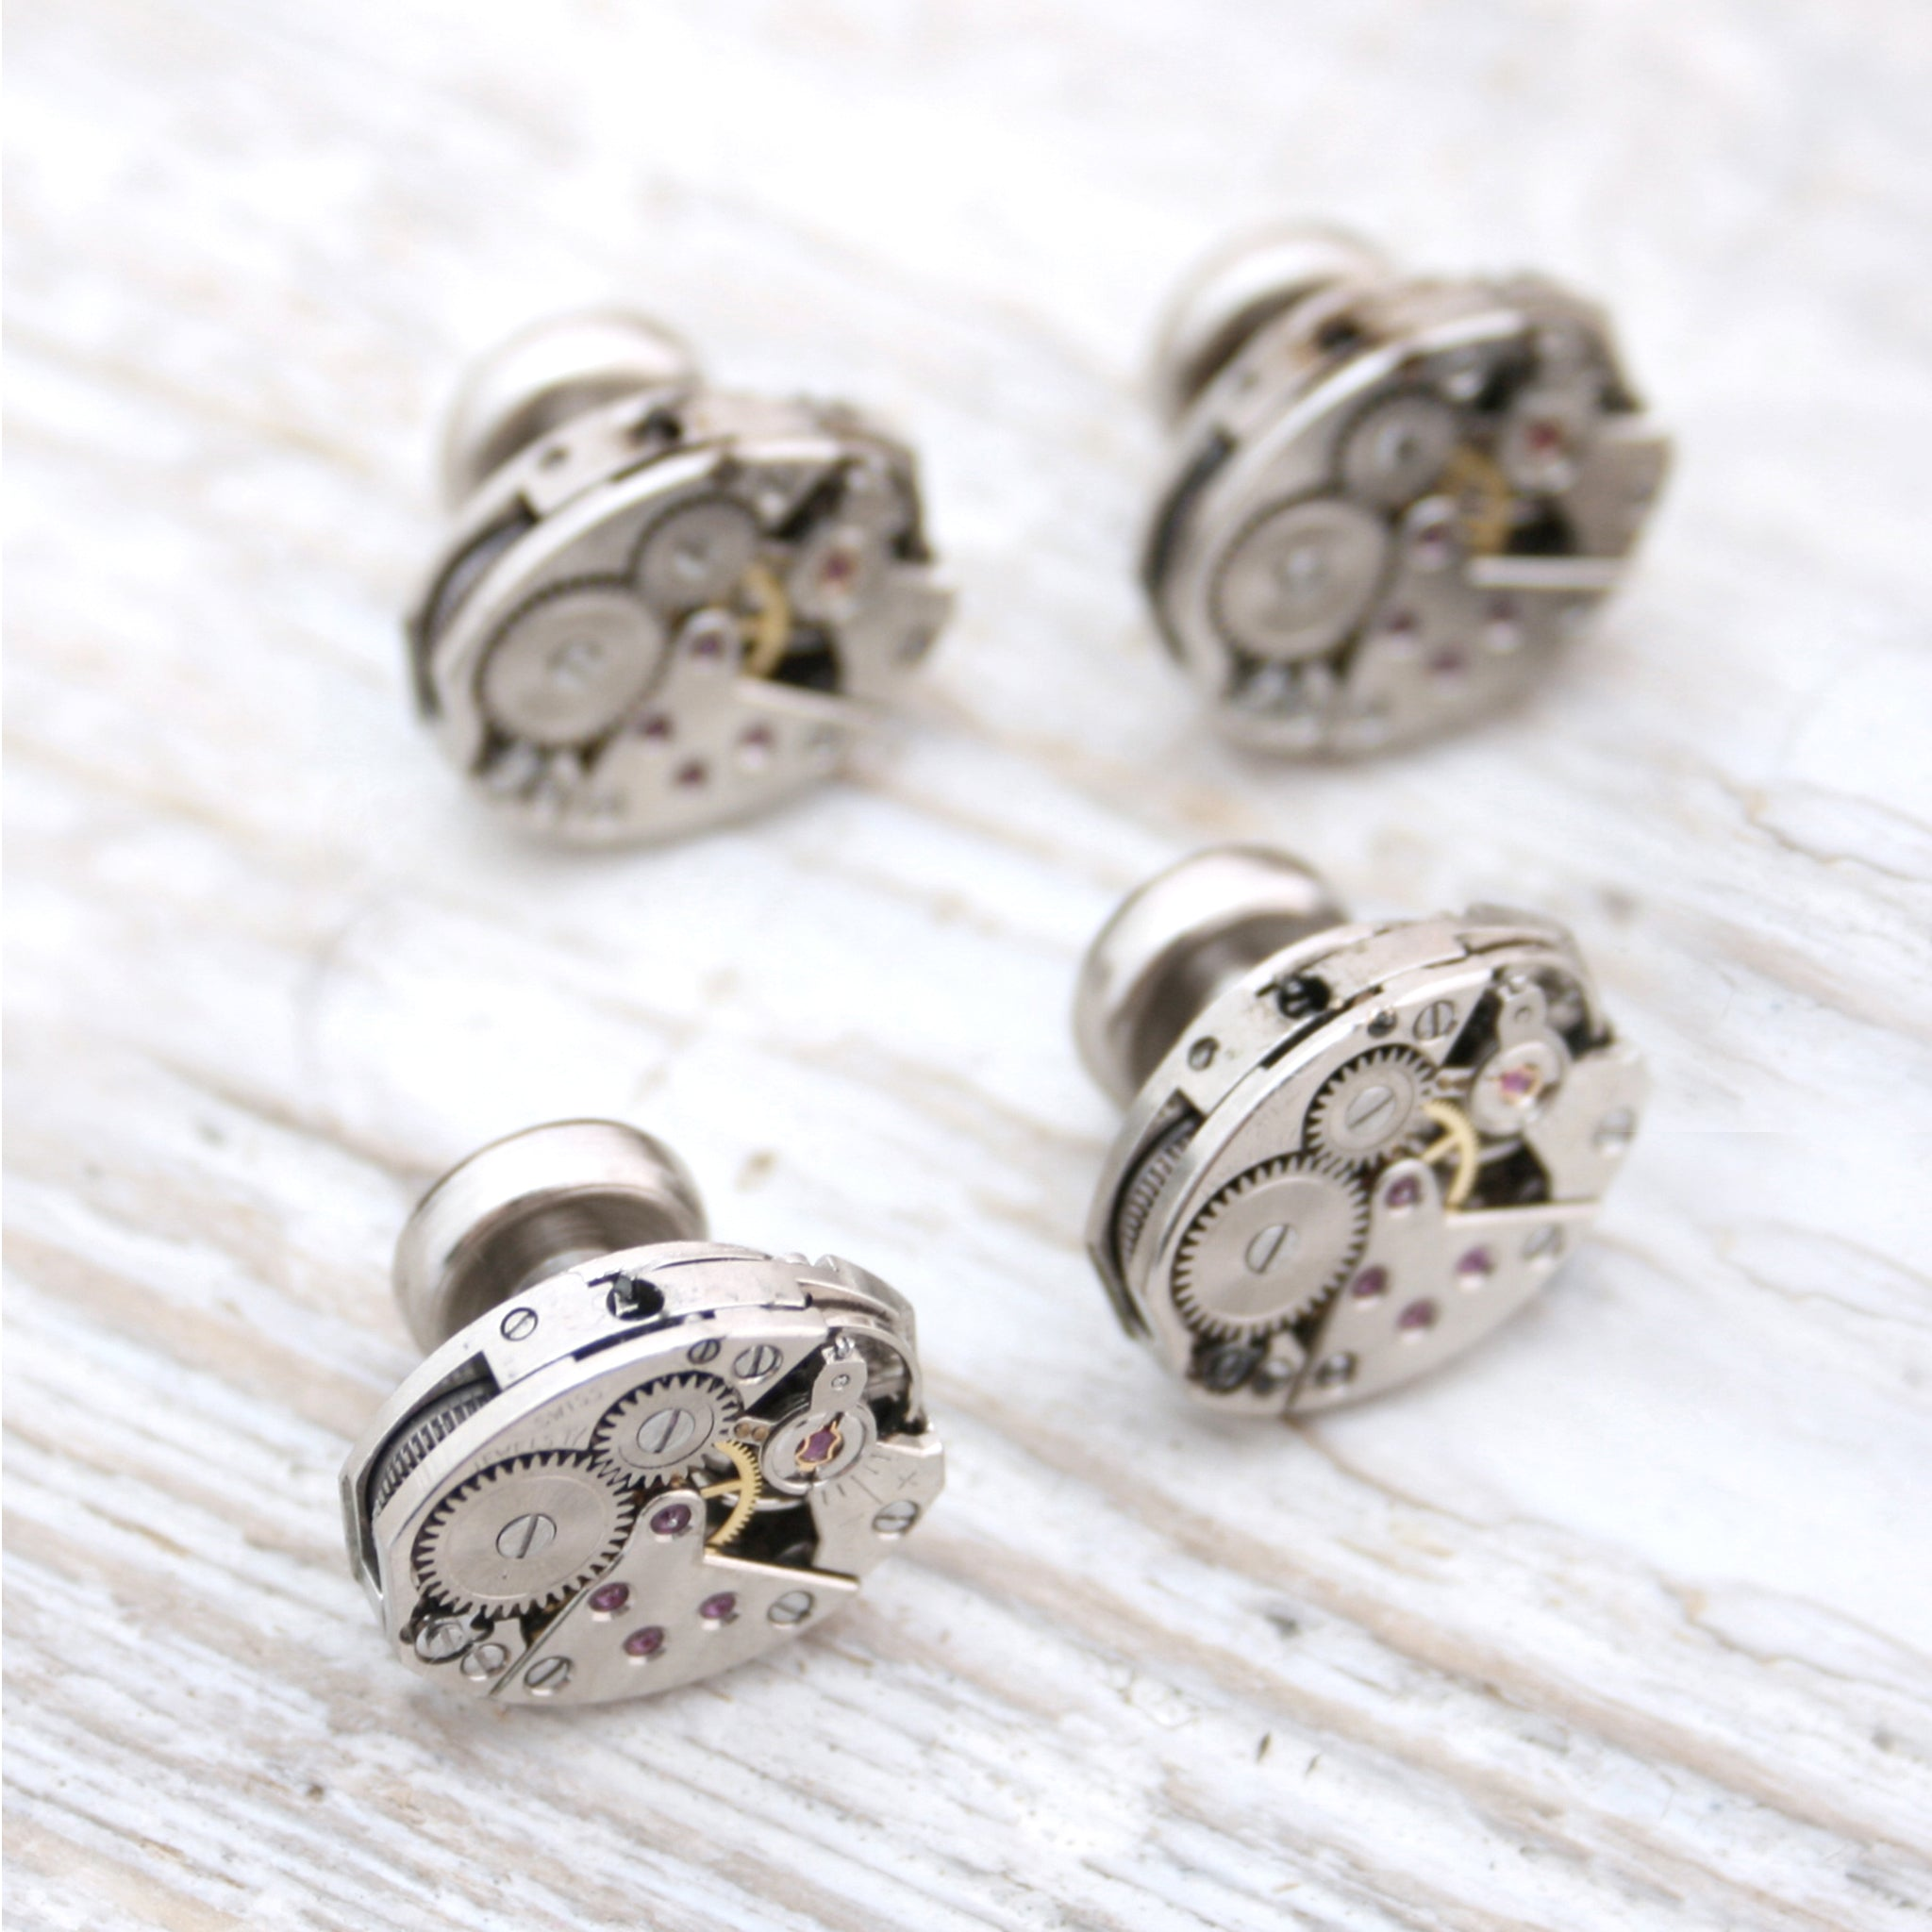 Set of four tuxedo studs made of real watch mechanisms